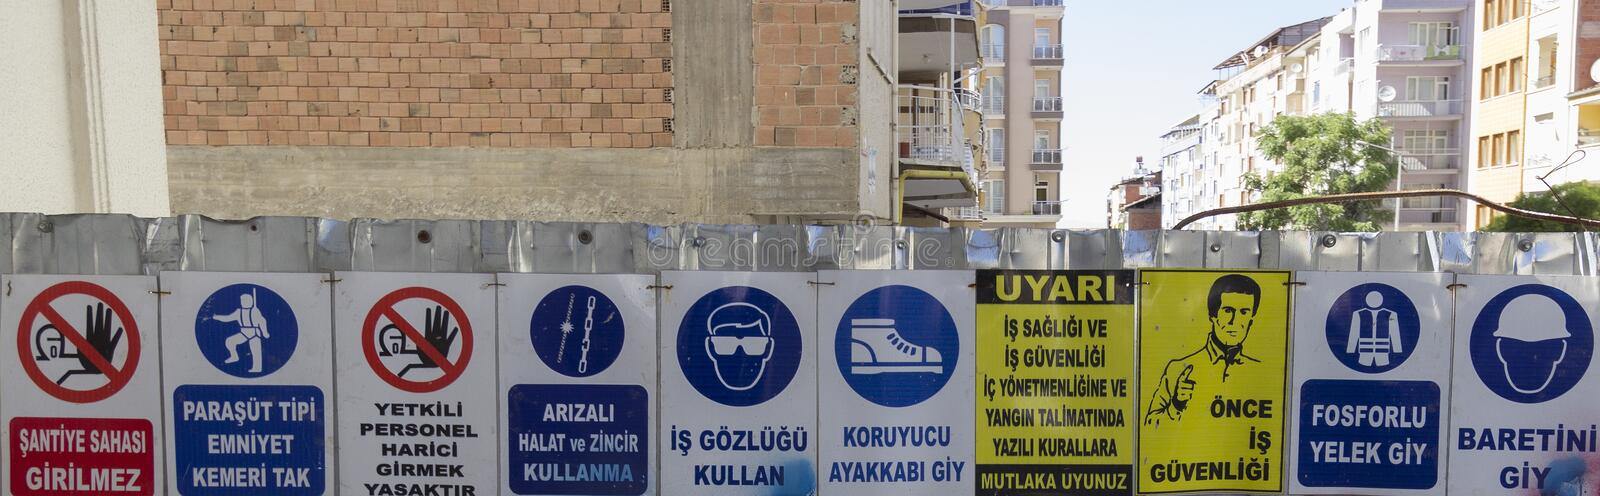 Horizontal Series of Work Safety Signs at a construction site royalty free stock image